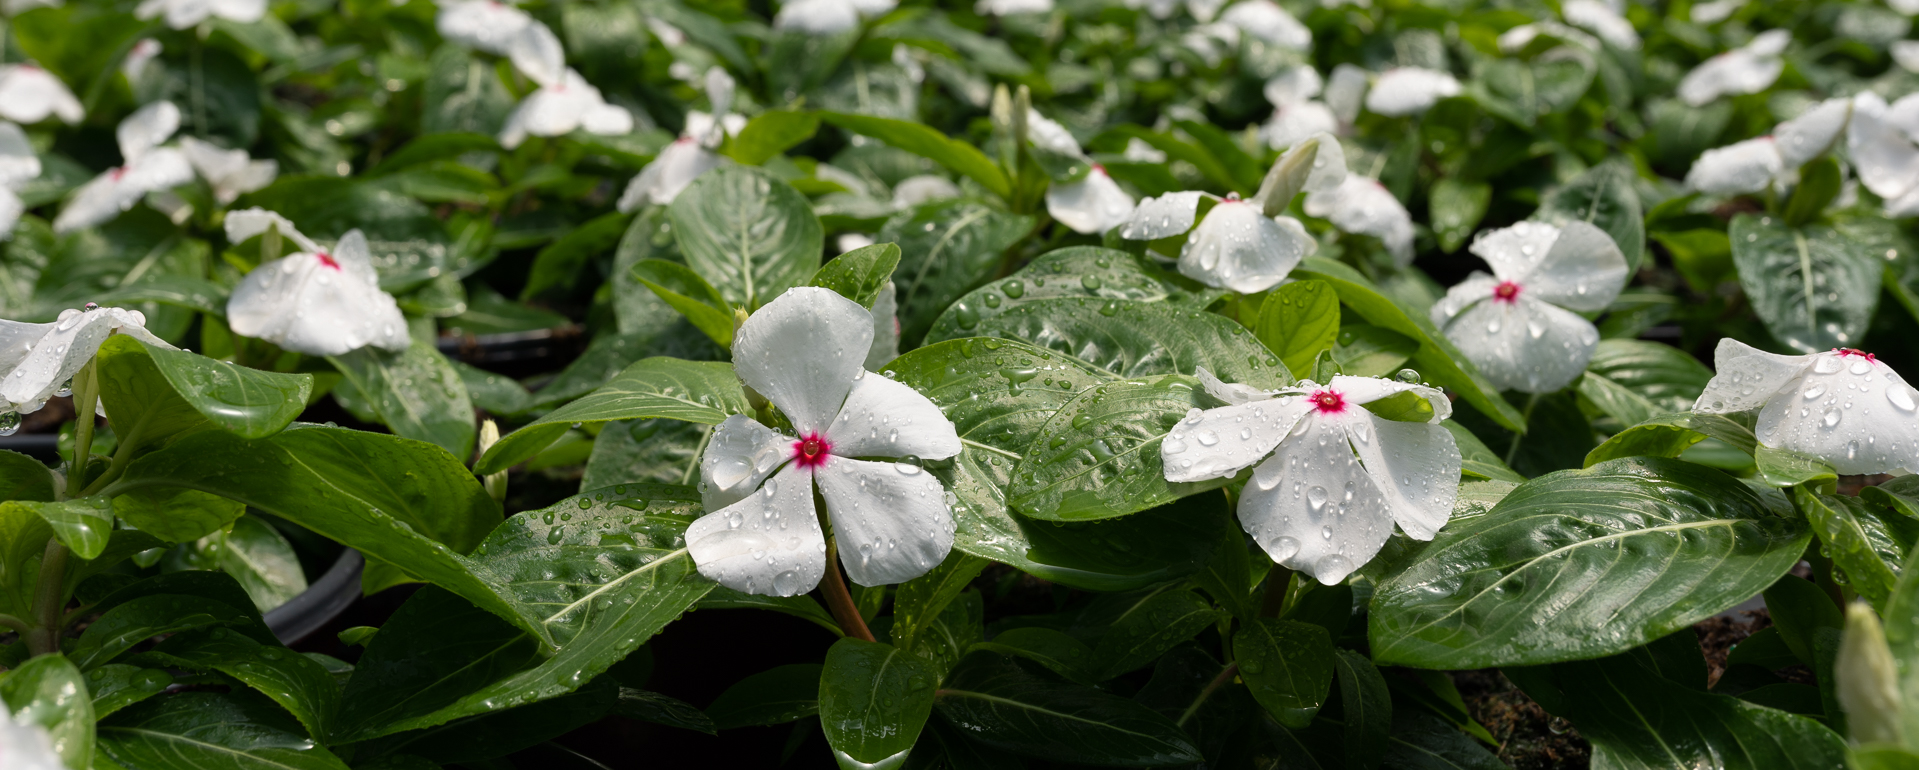 cora vinca heat loving flower